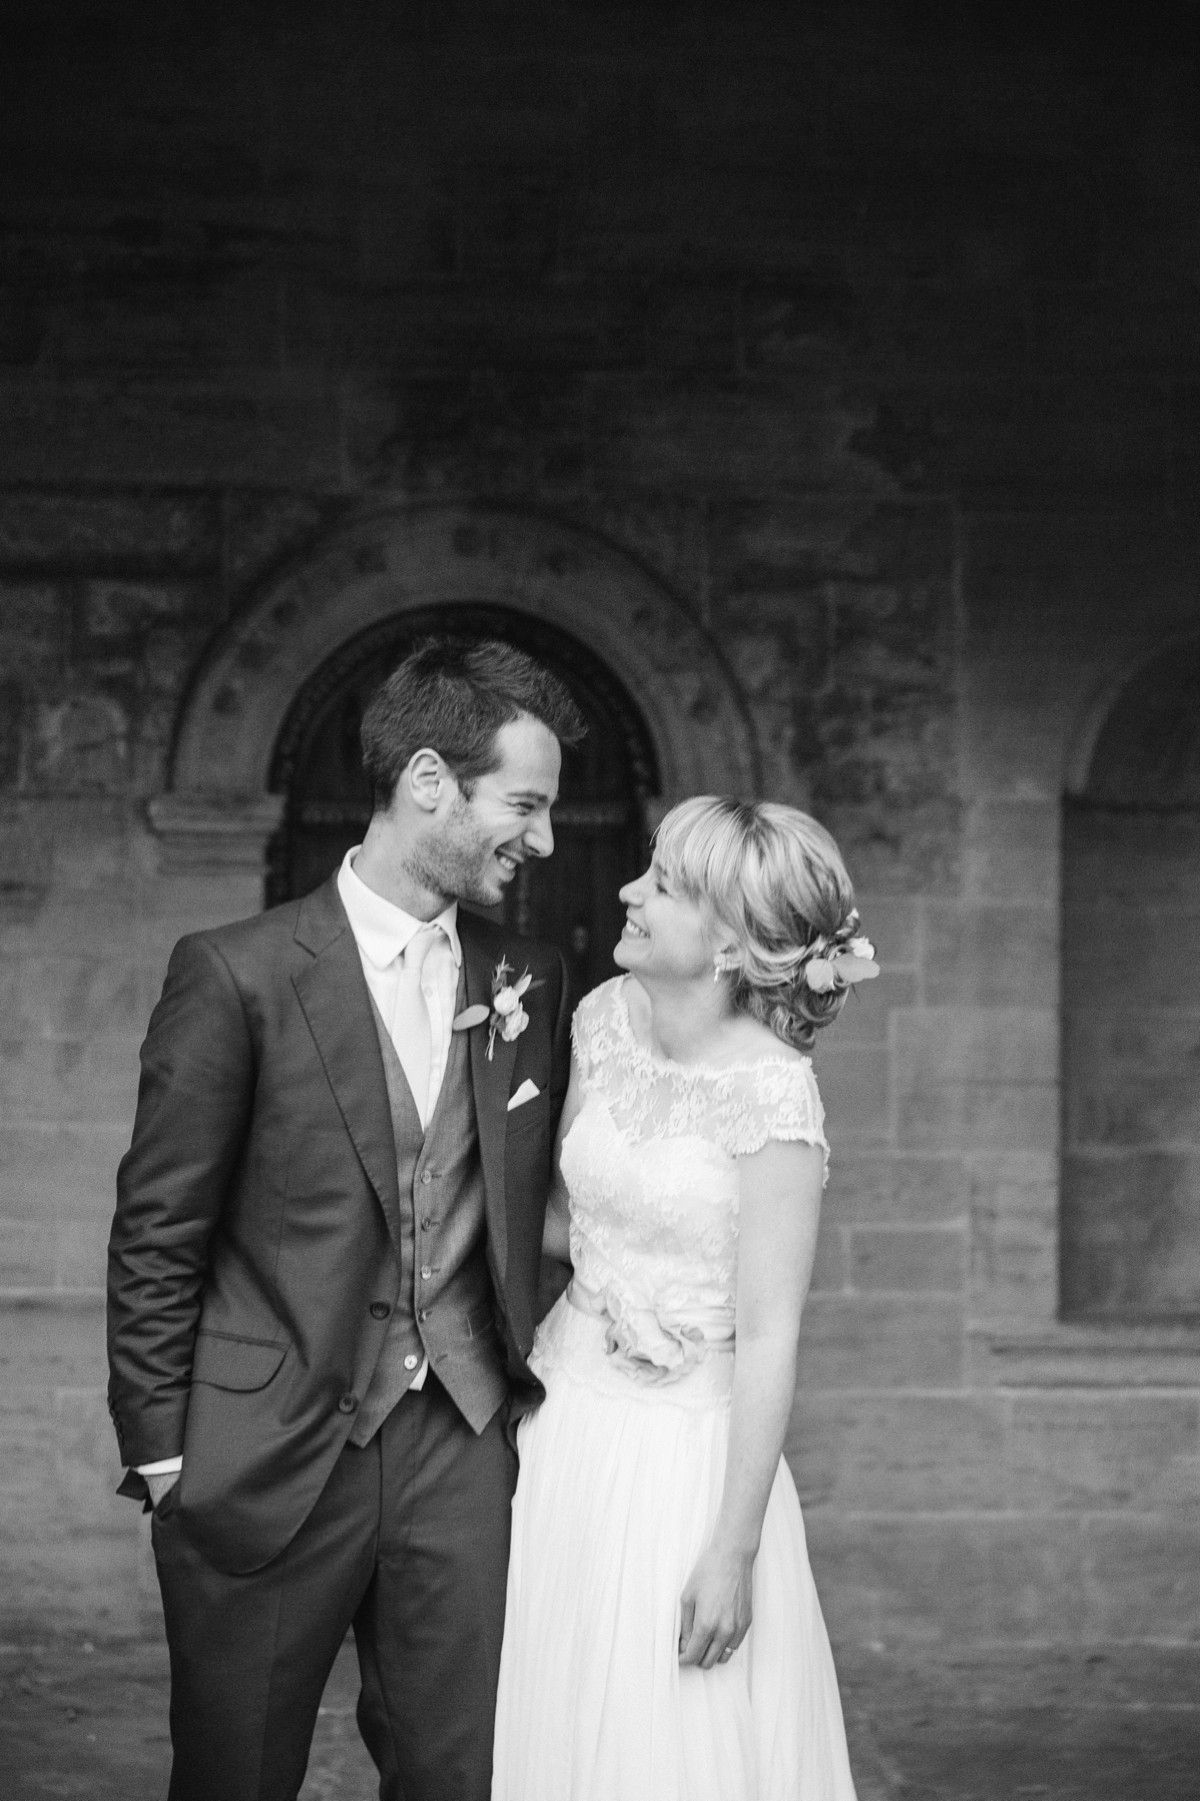 Black and white image of bride and groom at Nymans Garden